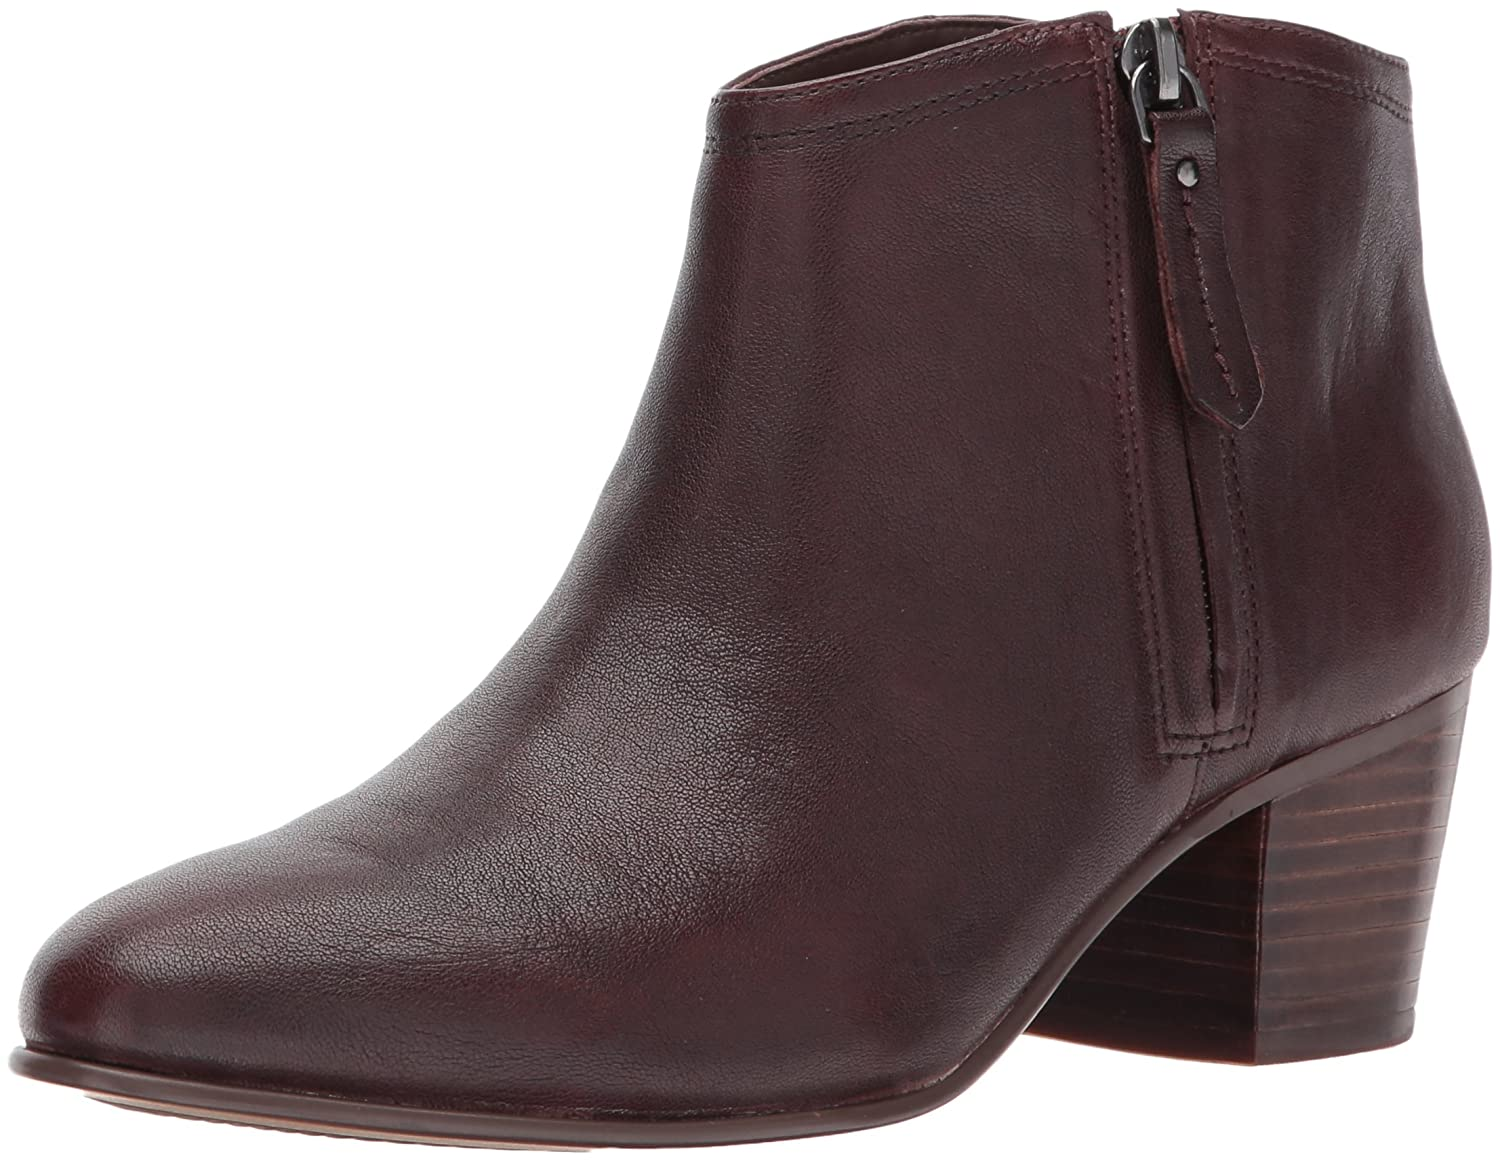 CLARKS Women's Maypearl Alice Ankle Bootie B01NGYHSID 7 B(M) US|Mahogany Nubuck